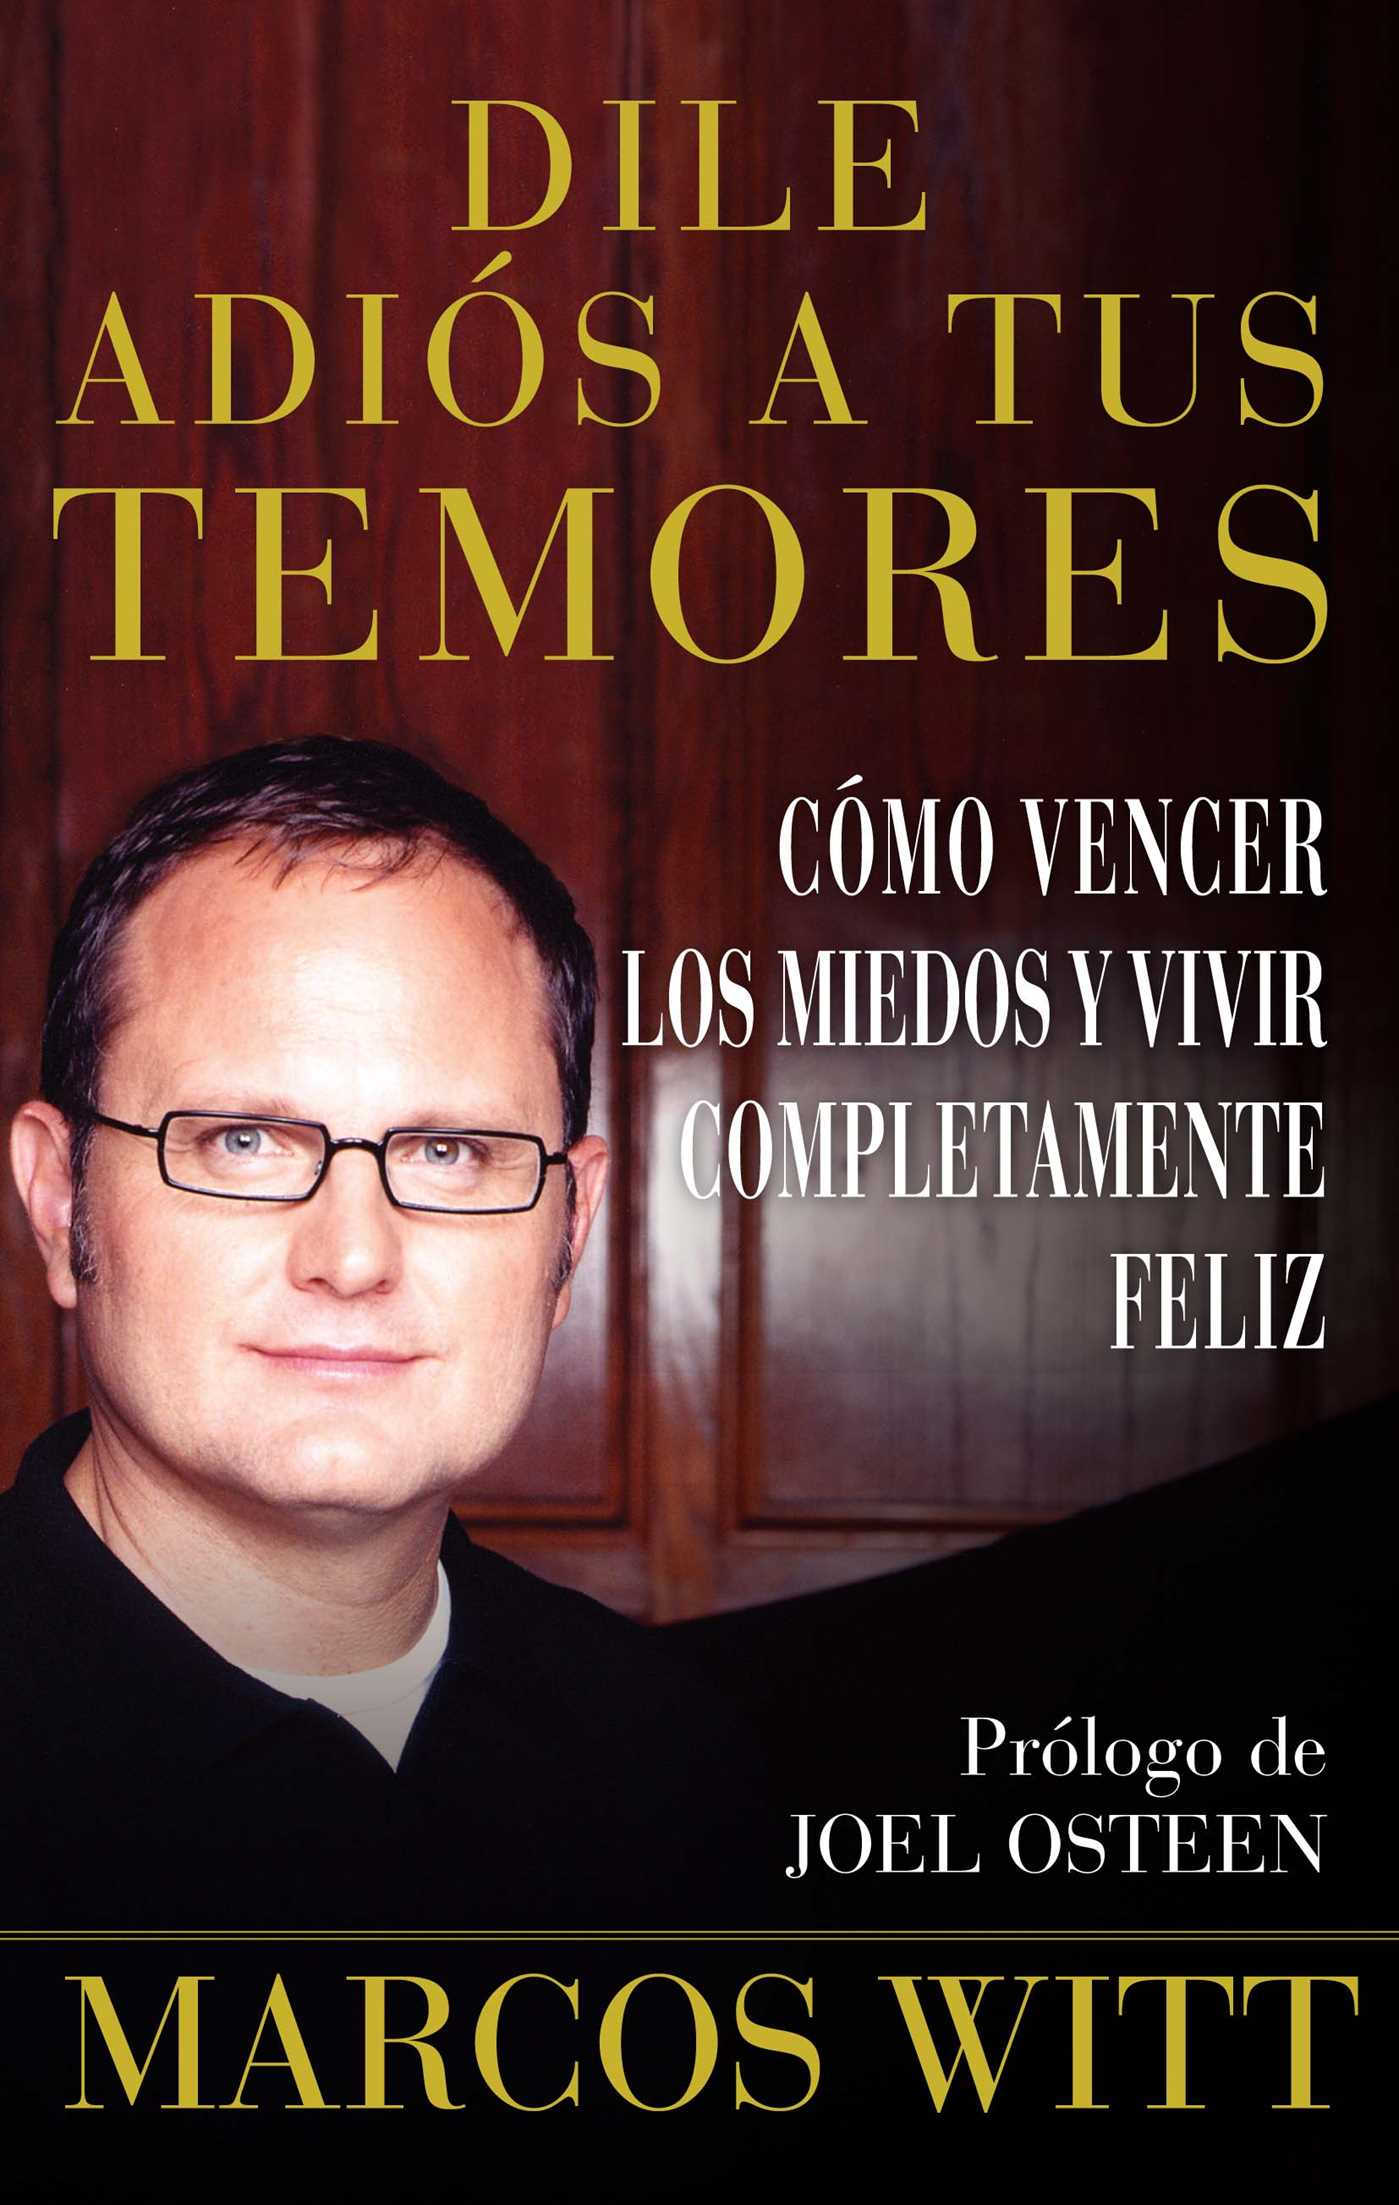 Dile-adios-a-tus-temores-(how-to-overcome-fear)-9780743290876_hr